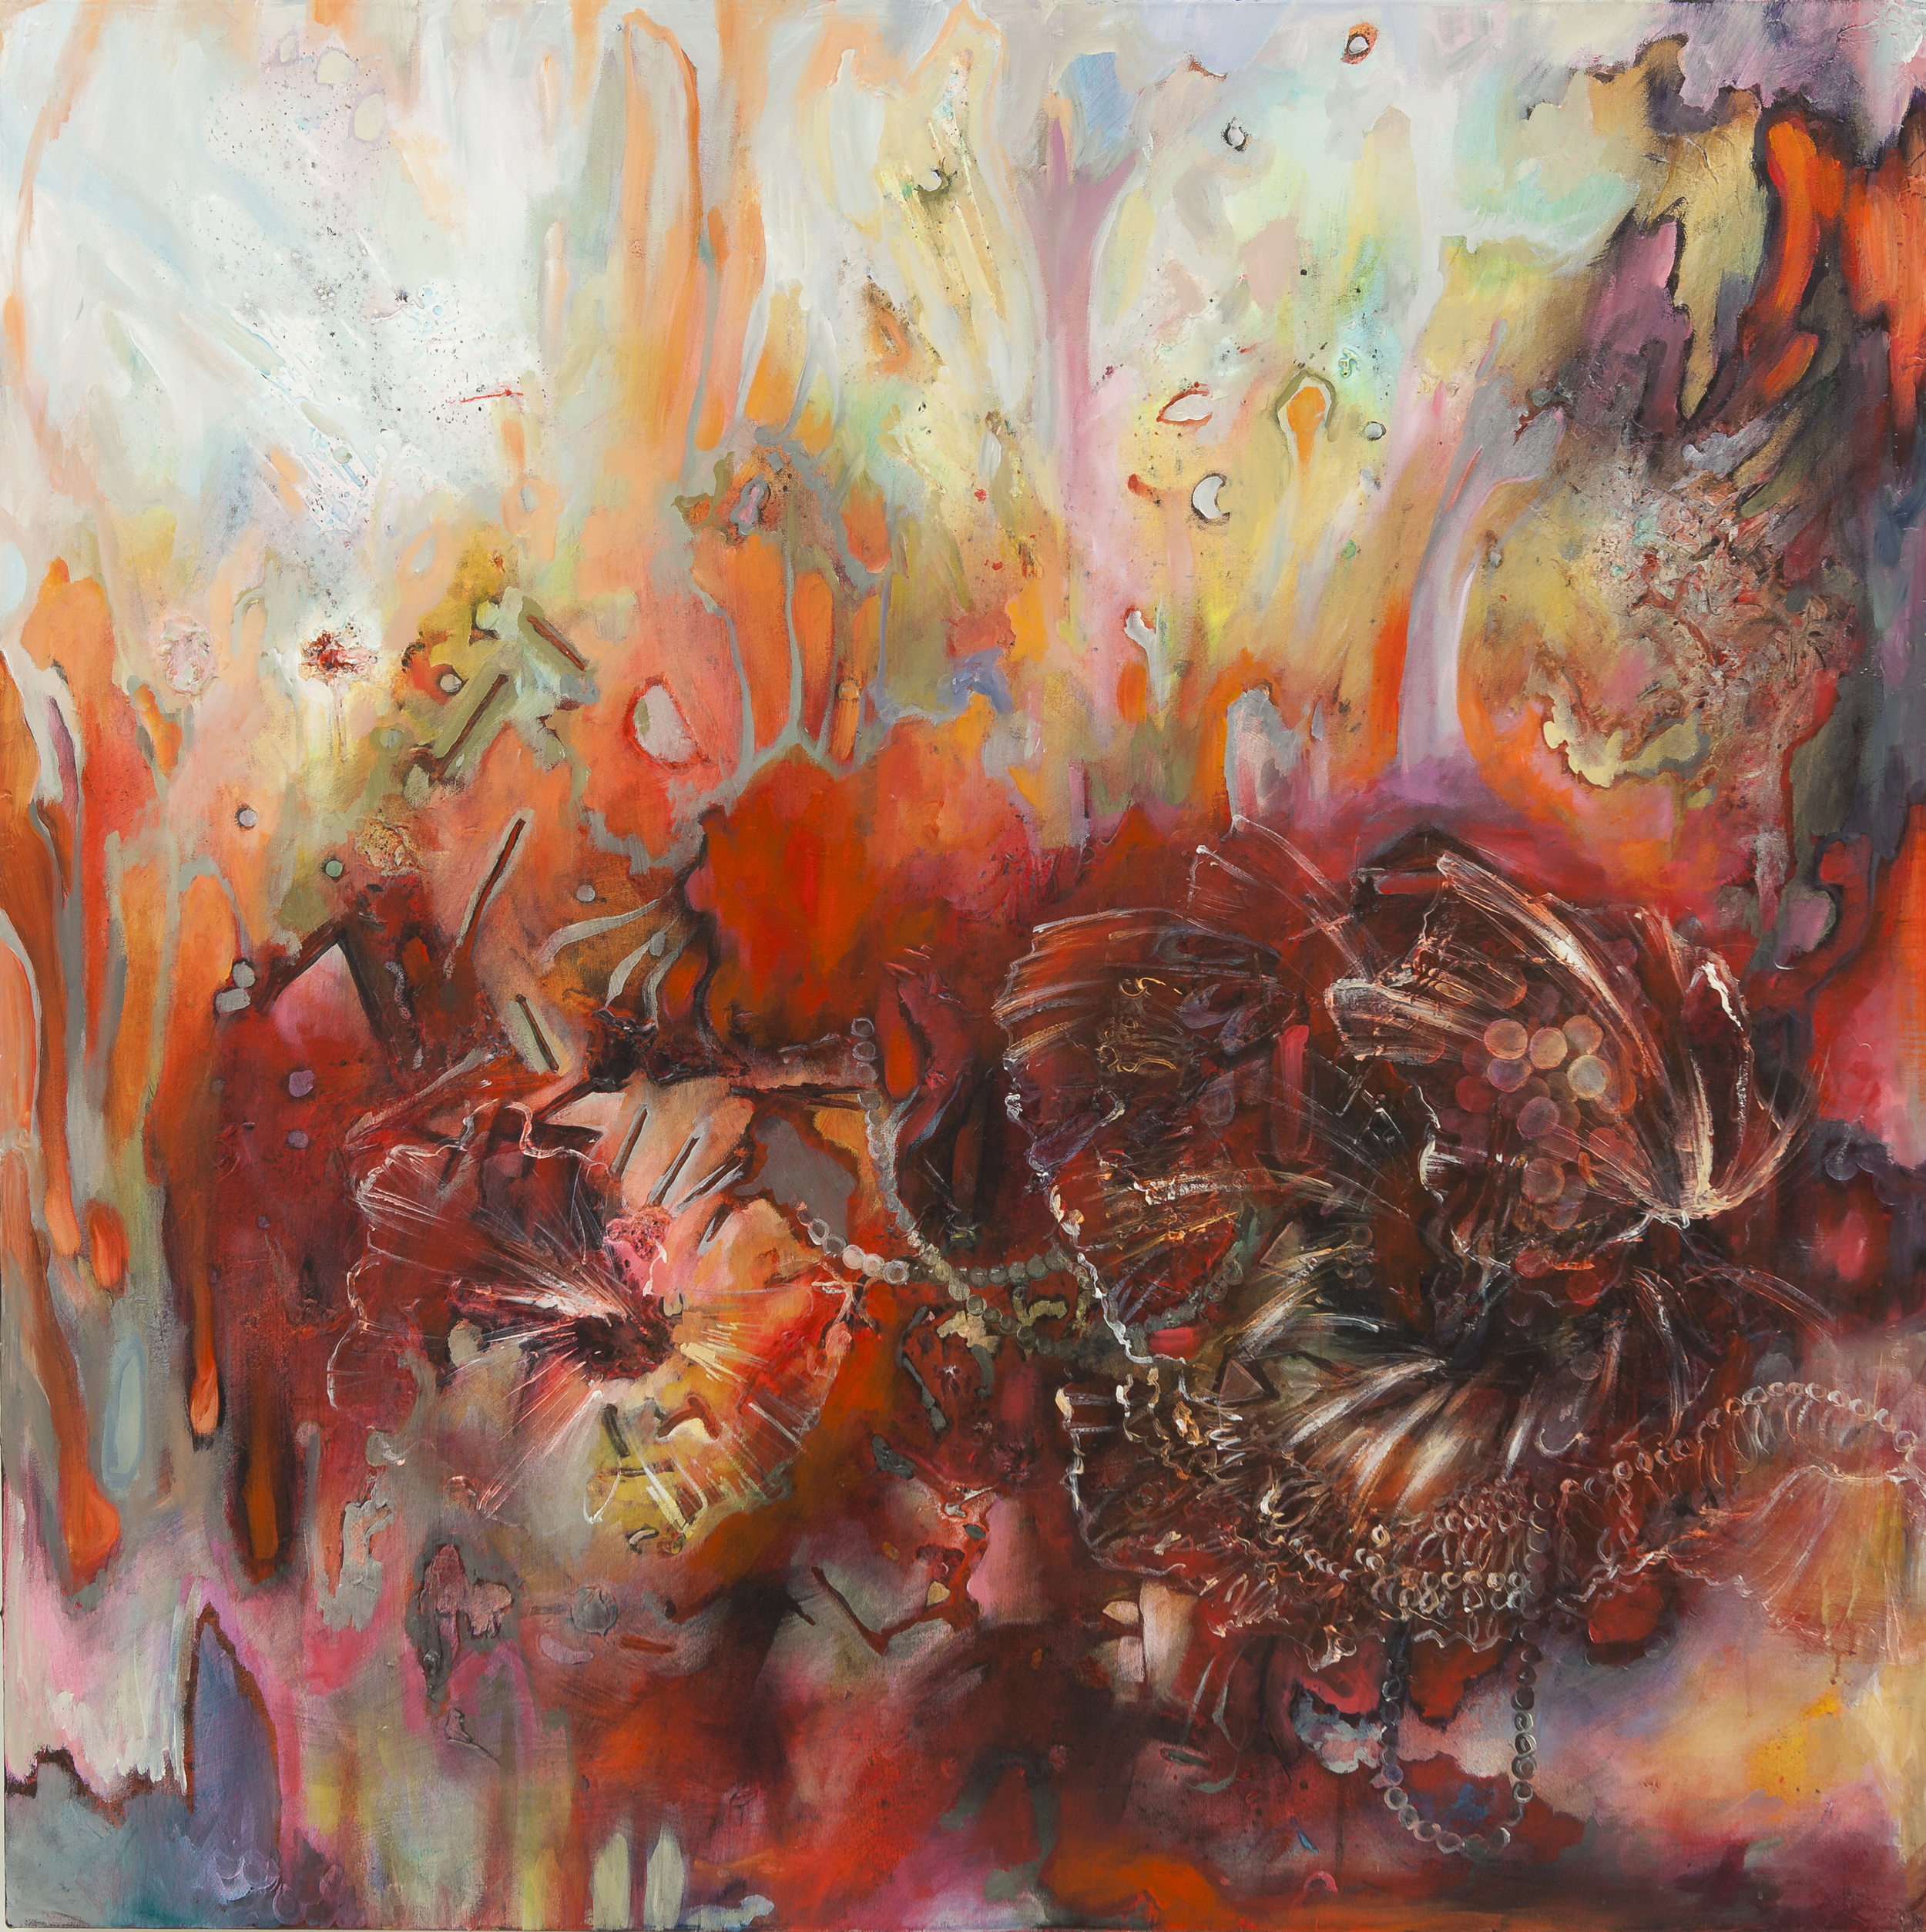 """Veil, Acrylic on Canvas, 48"""" by 48"""", 2013. SOLD"""